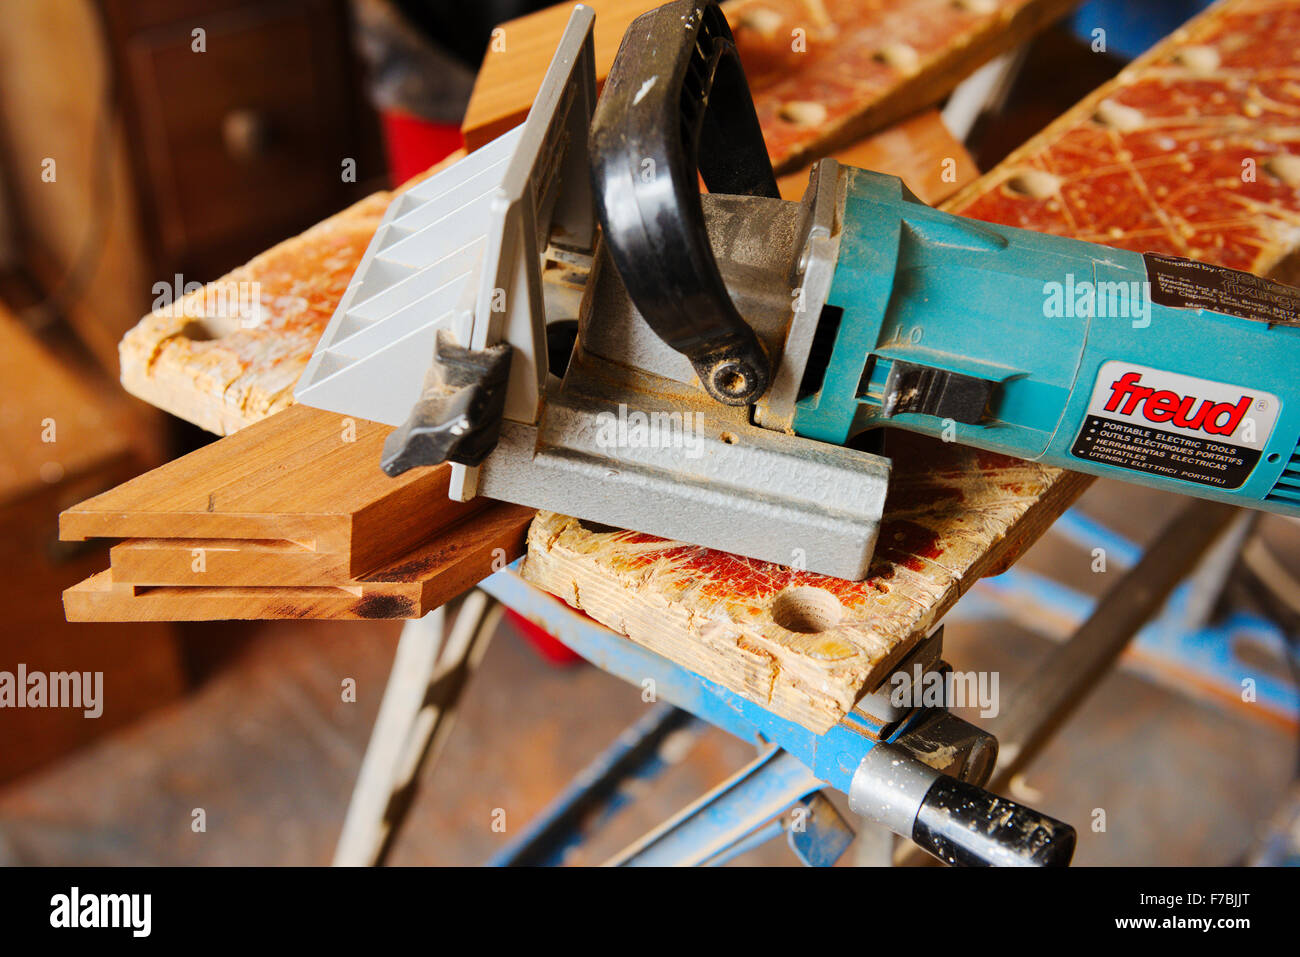 A biscuit jointer for cutting slots in a mitred wooden frame held in a workmate for jointing - Stock Image